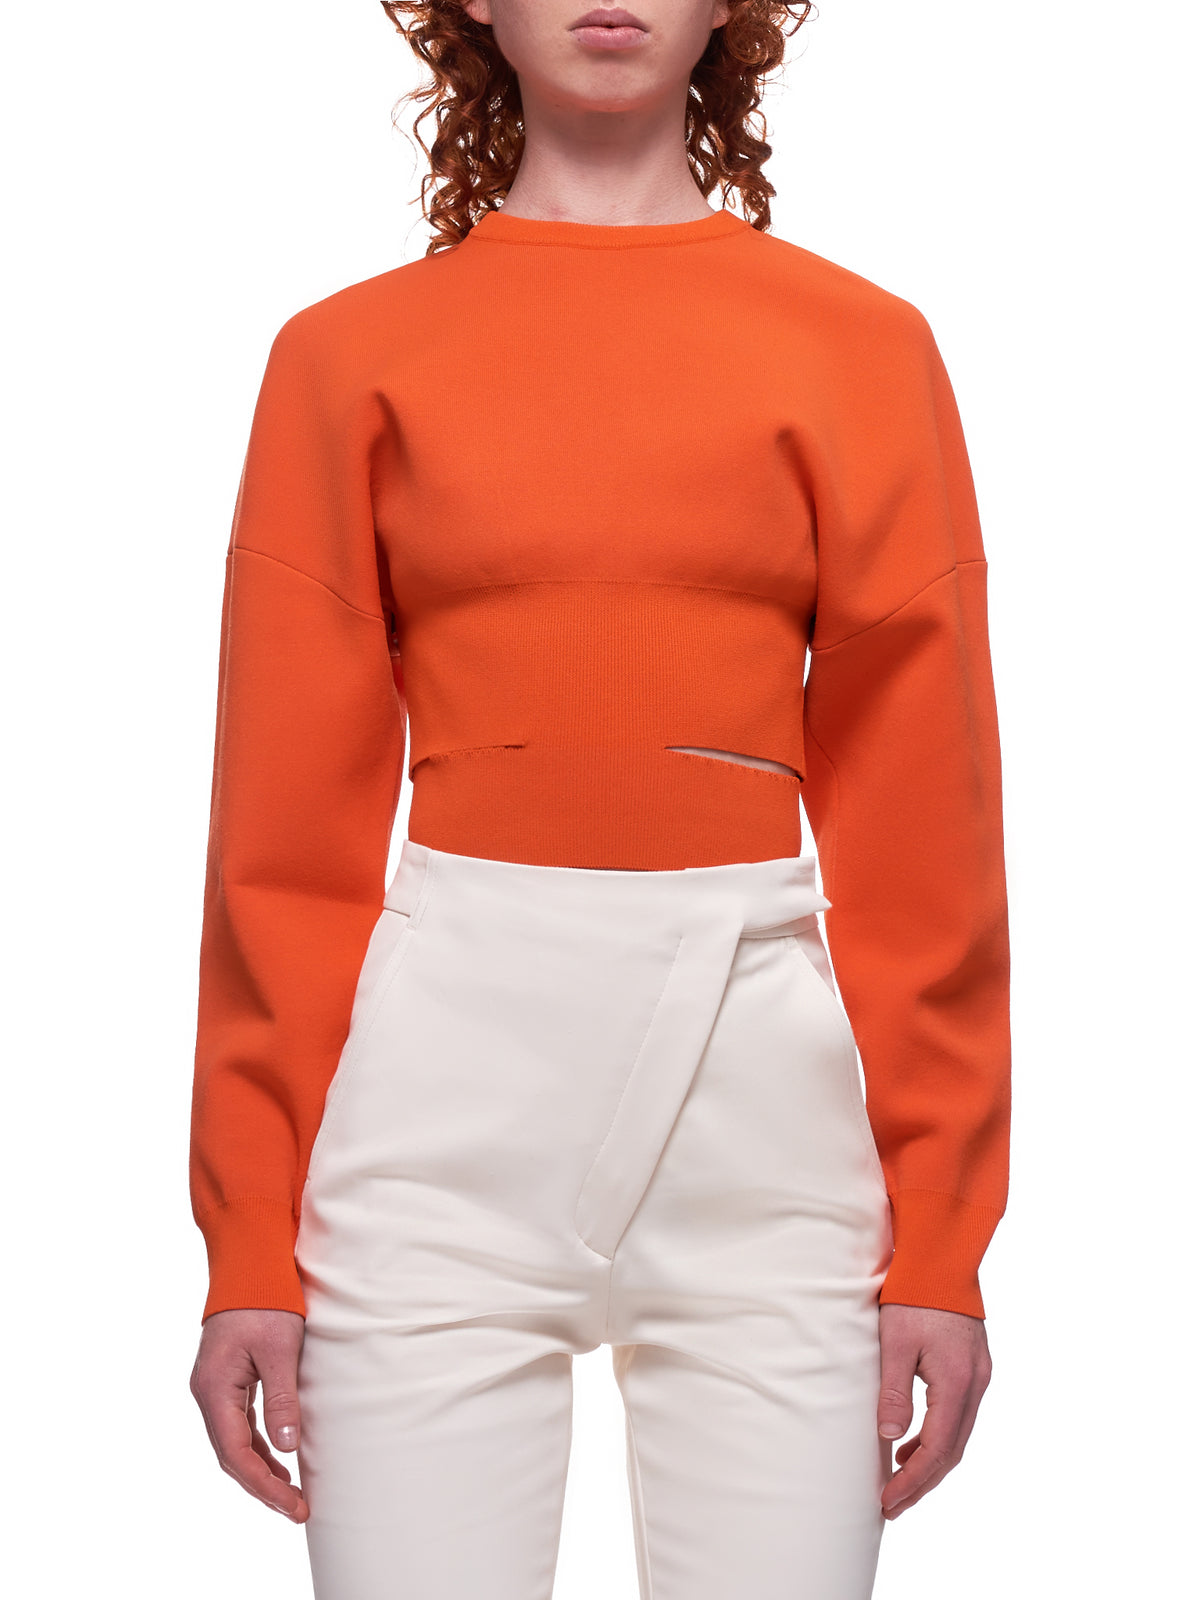 Knitted Slit Sweater (203-2604-269-072-ORANGE)